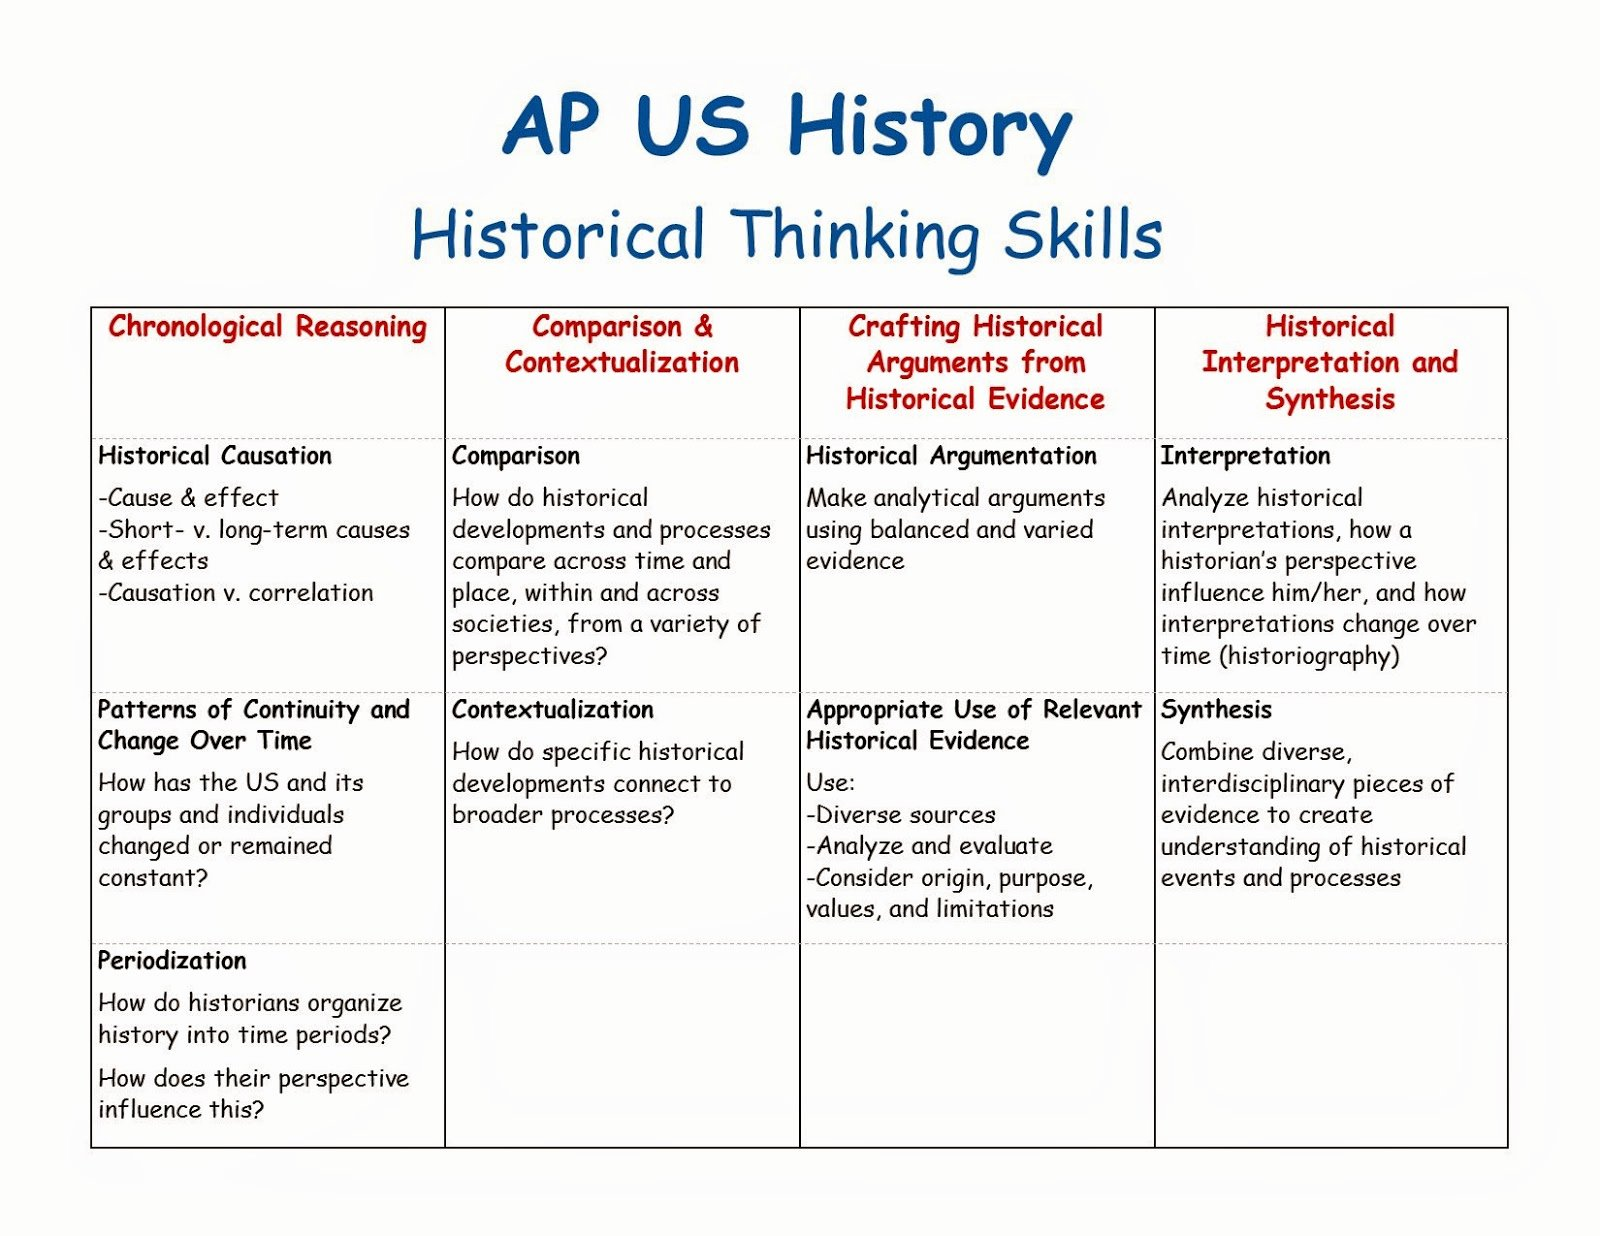 Apush Long Essay Examples 2015 Awesome Apush Ta February 2015